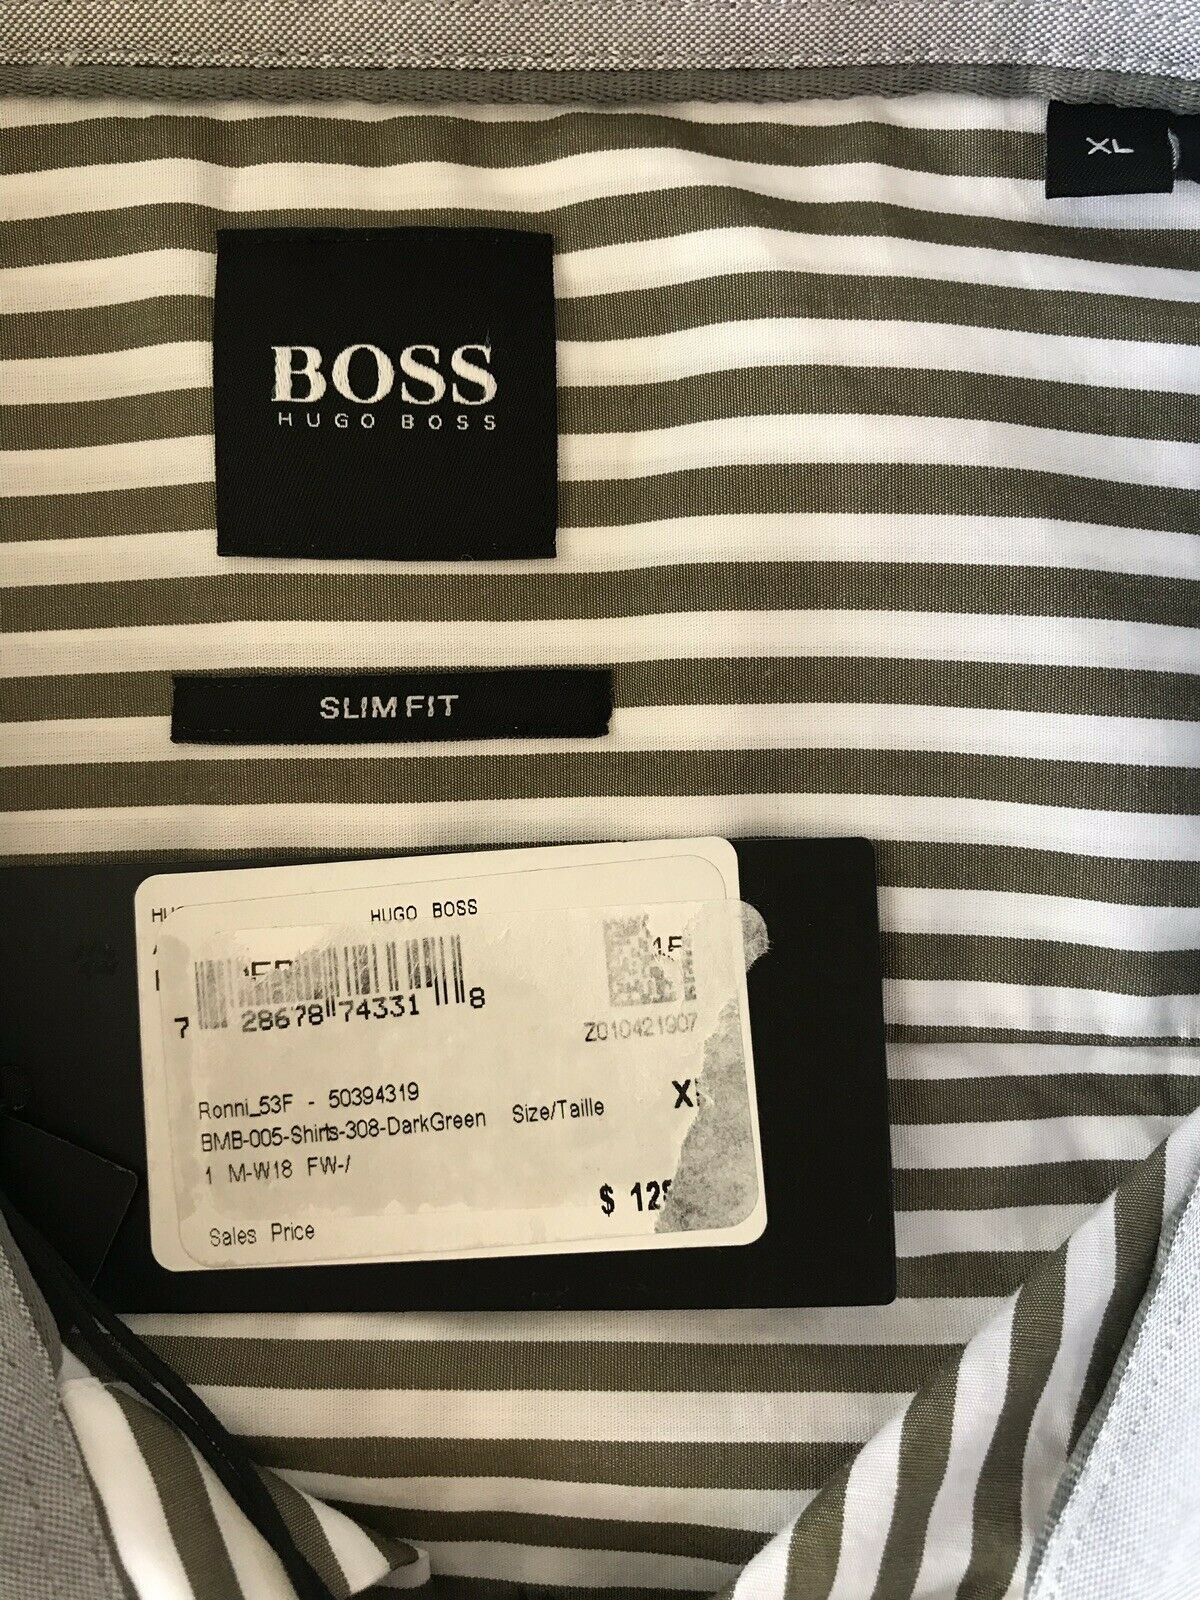 NWT $128 Hugo Boss Ronni Men's Slim Fit Cotton Dark Green Dress Shirt Size XL